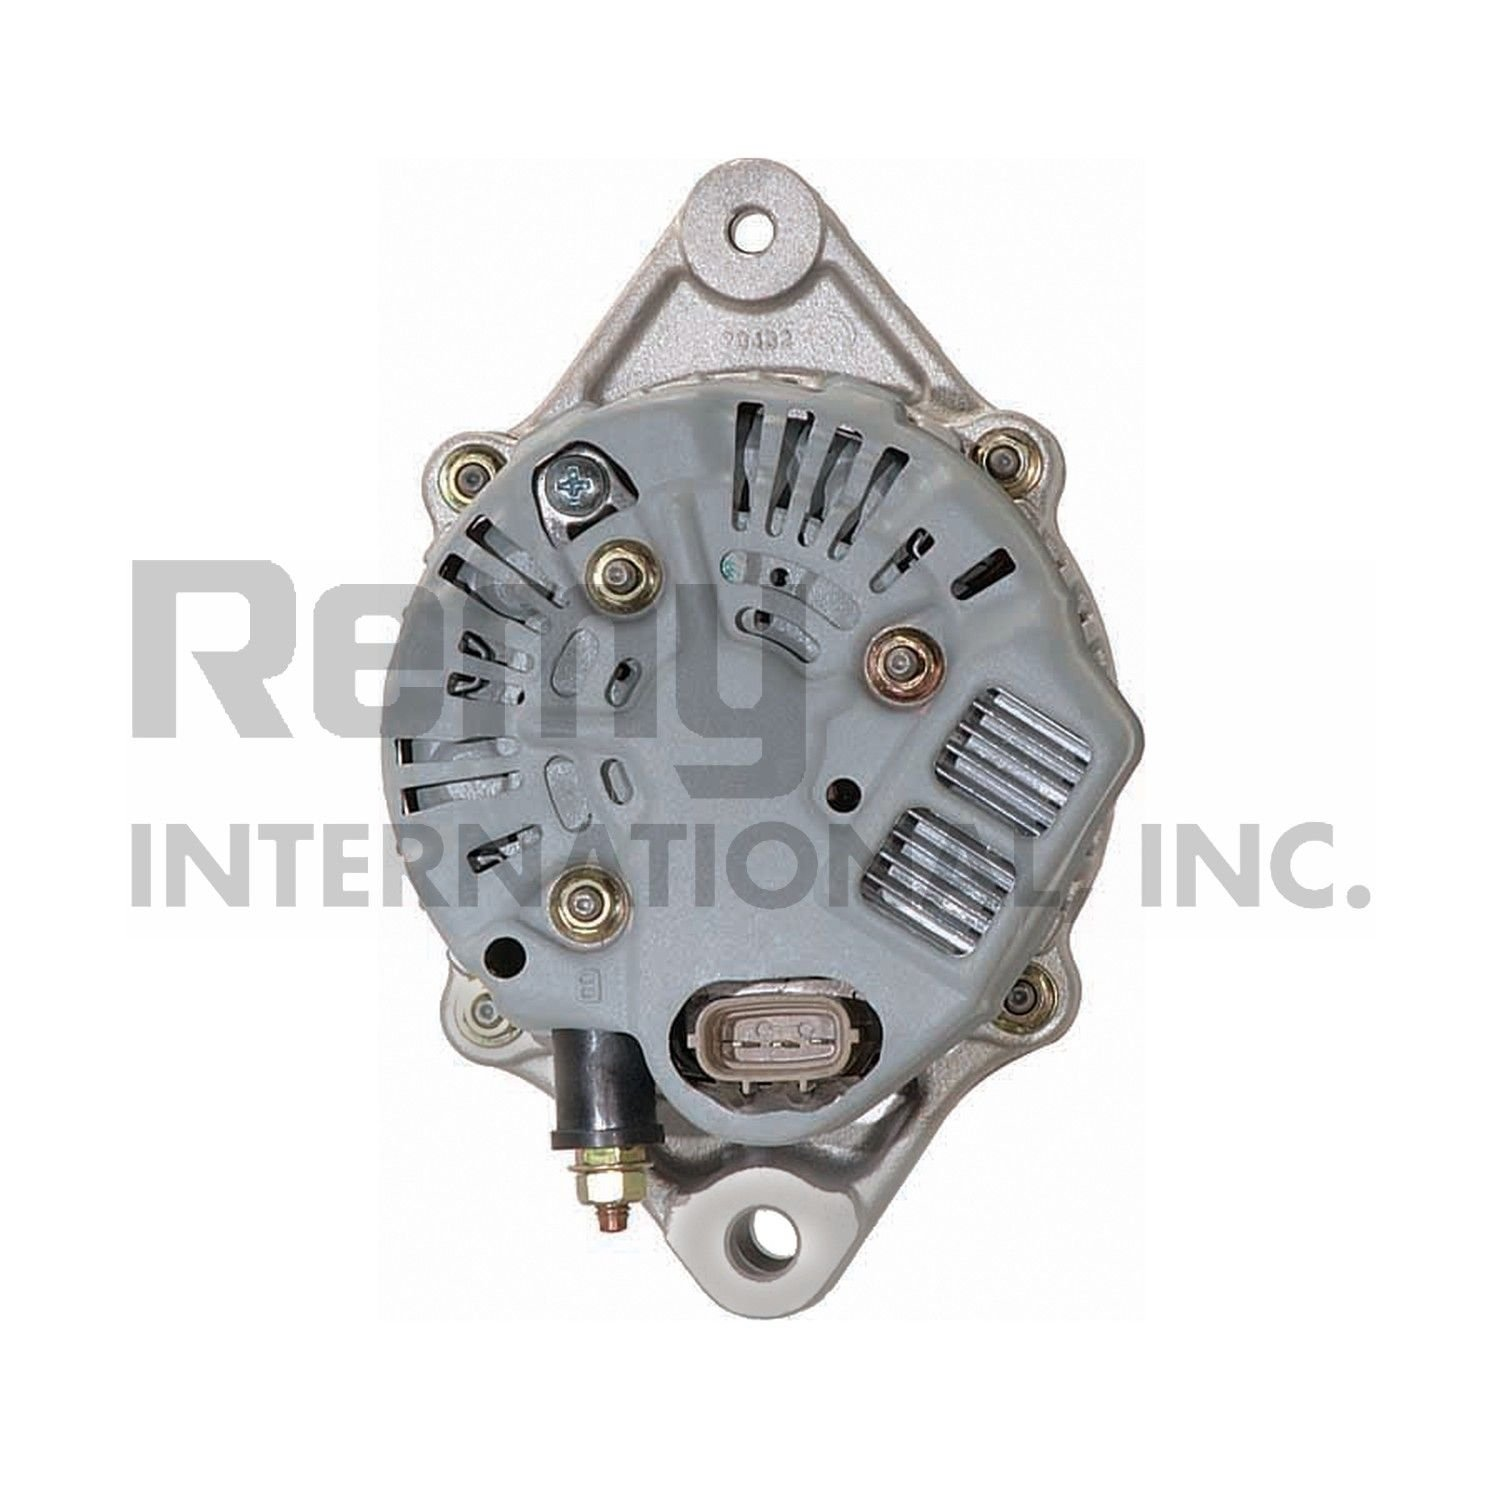 Acura Slx Alternator Replacement Denso Mpa Remy Go Parts 1998 Wiring Diagram 6 Cyl 35l 12010 75 Amps